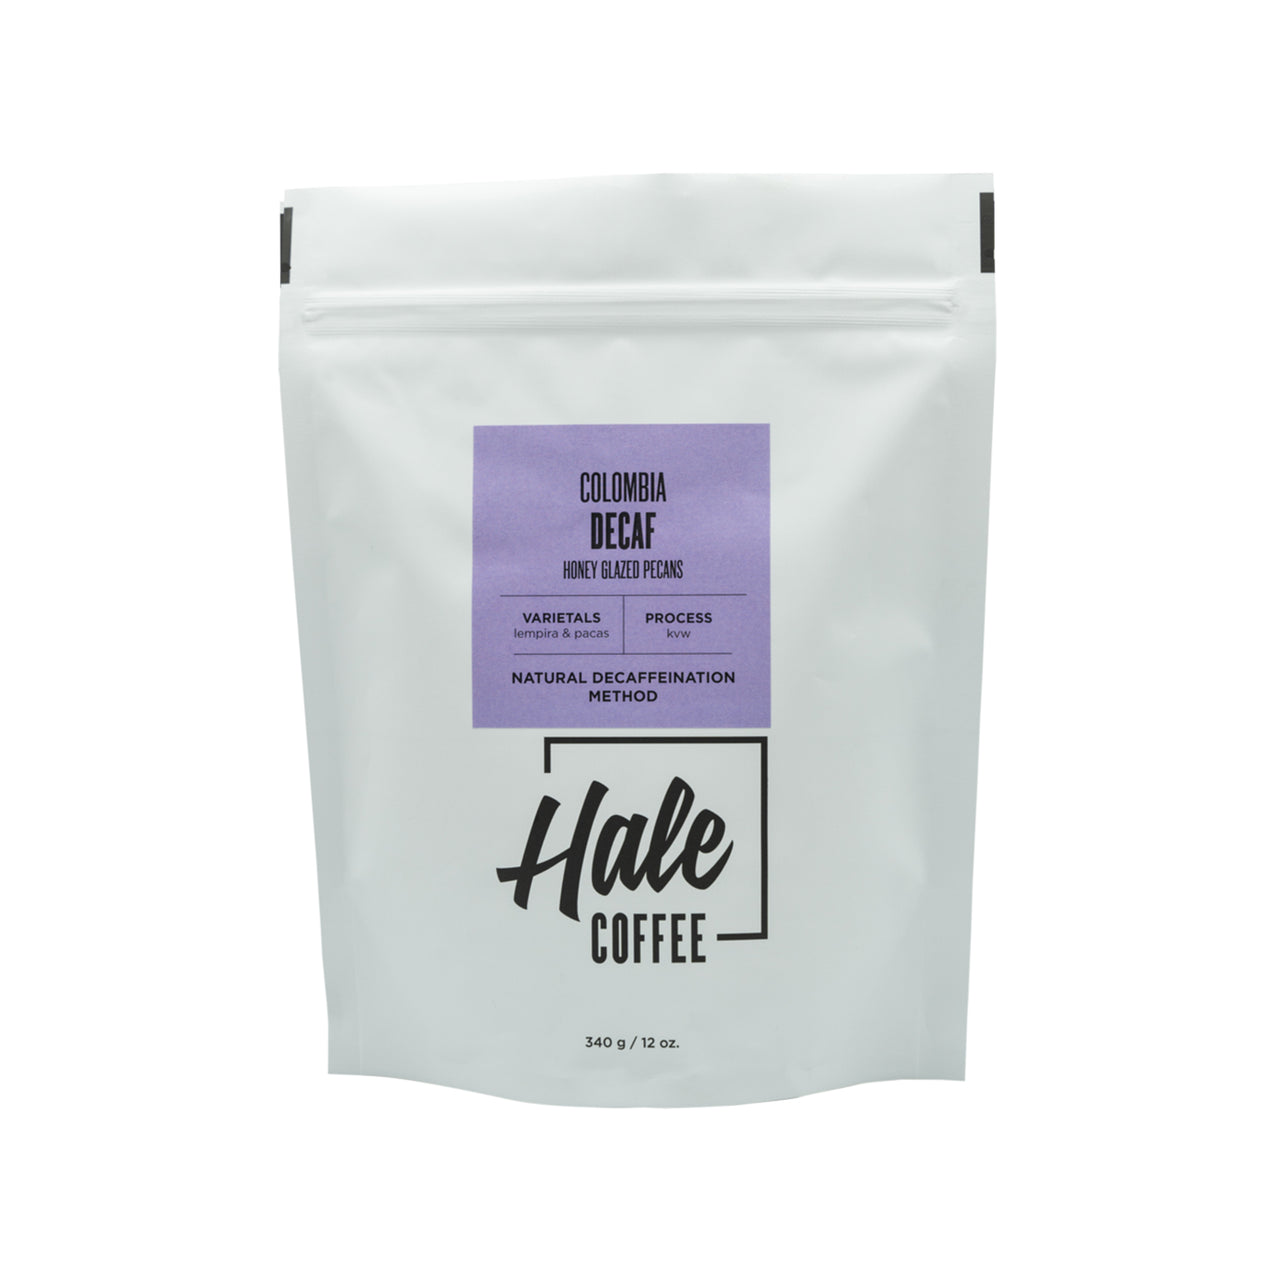 Hale Coffee - Colombia Decaf (3/4 lbs)